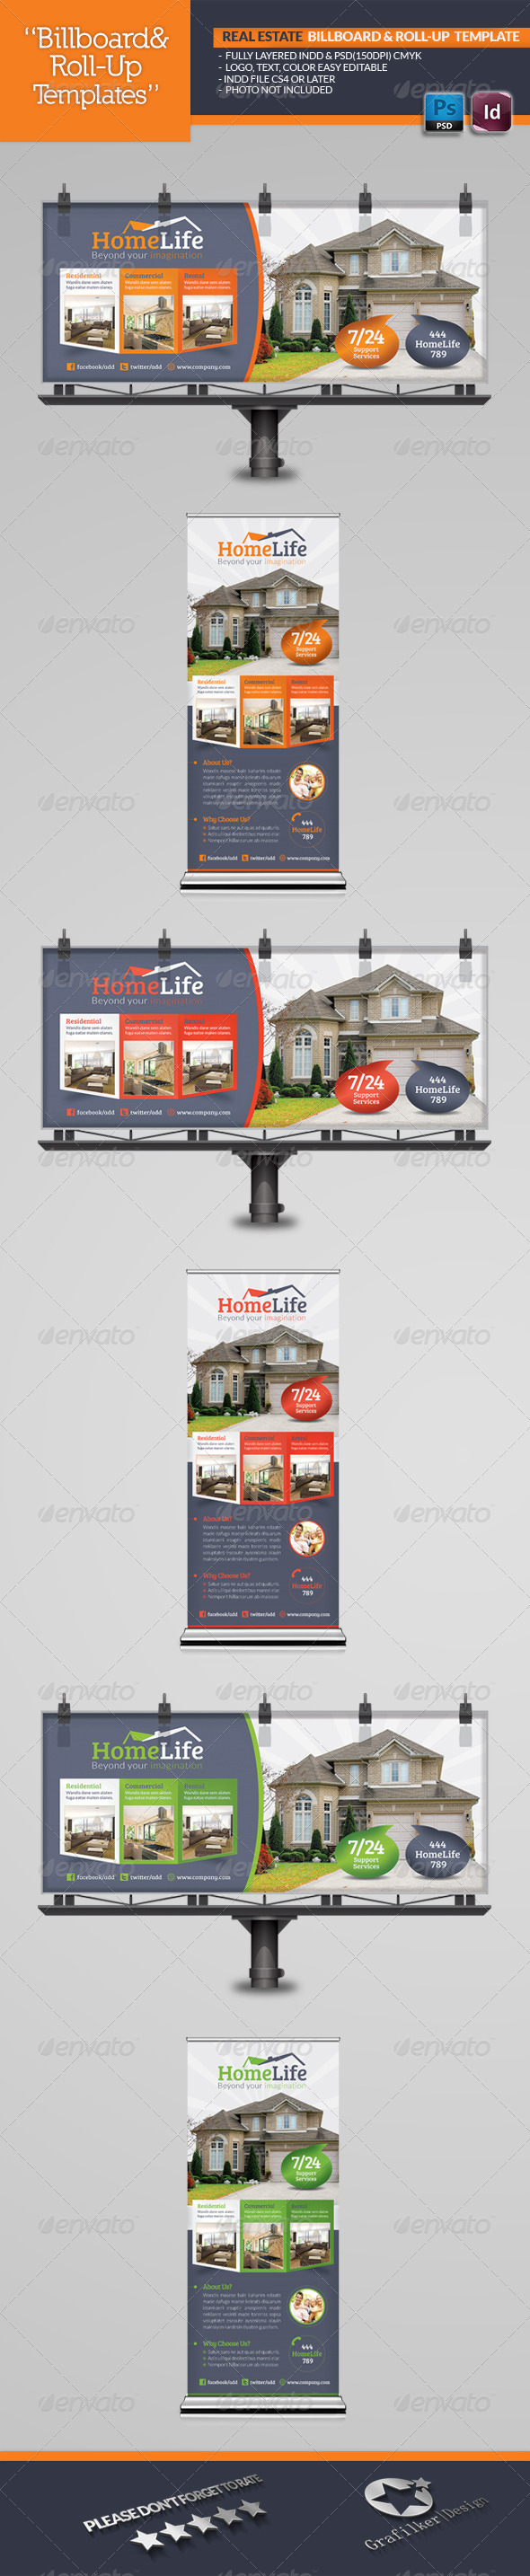 GraphicRiver Real Estate Billboard & Roll-Up Template 5212636